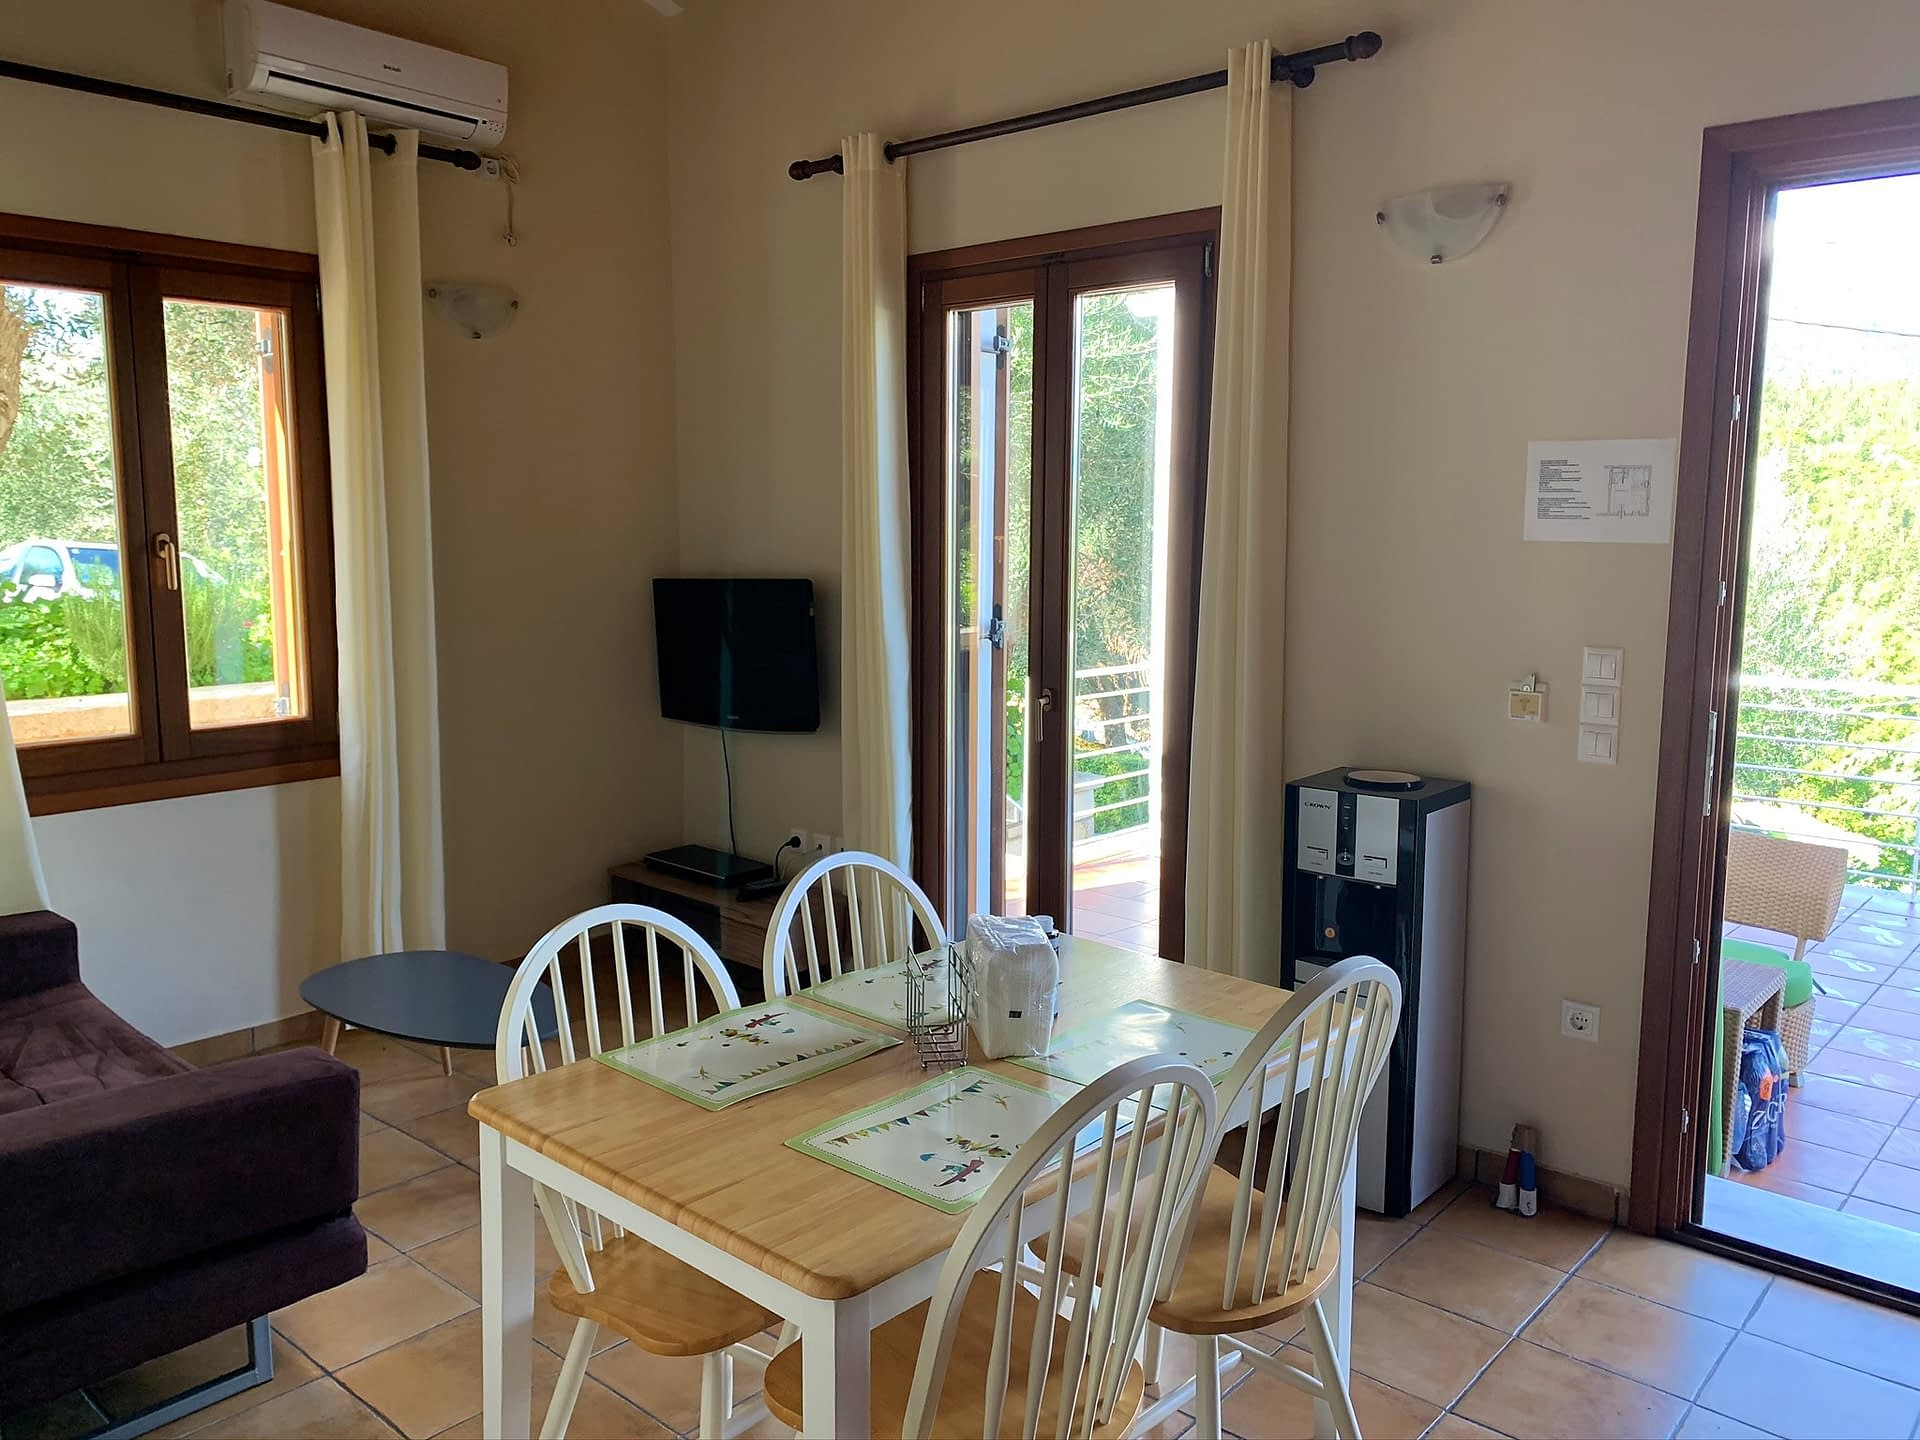 Interior livingroom of holiday house for rent in Ithaca Greece, Frikes